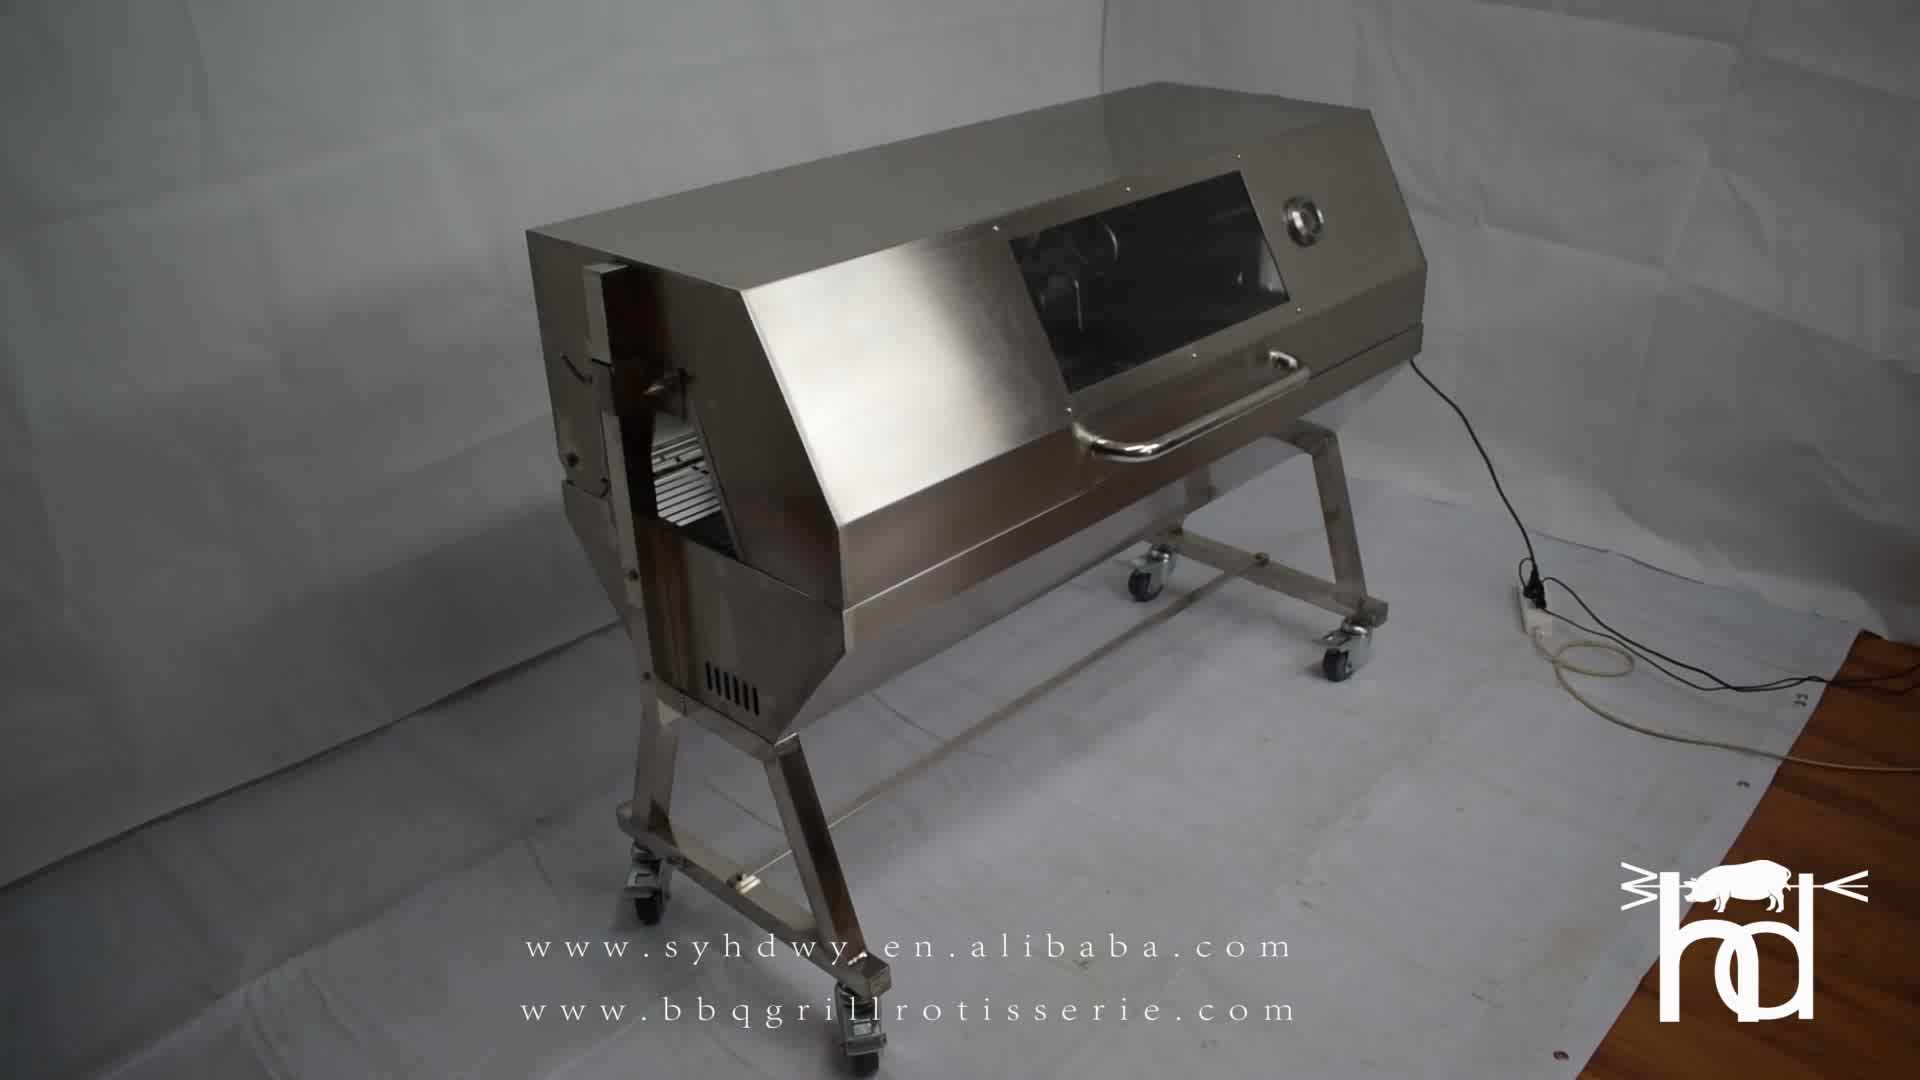 Outdoor large stainless steel hog lamb charcoal barbeque bbq rotisserie spit roast